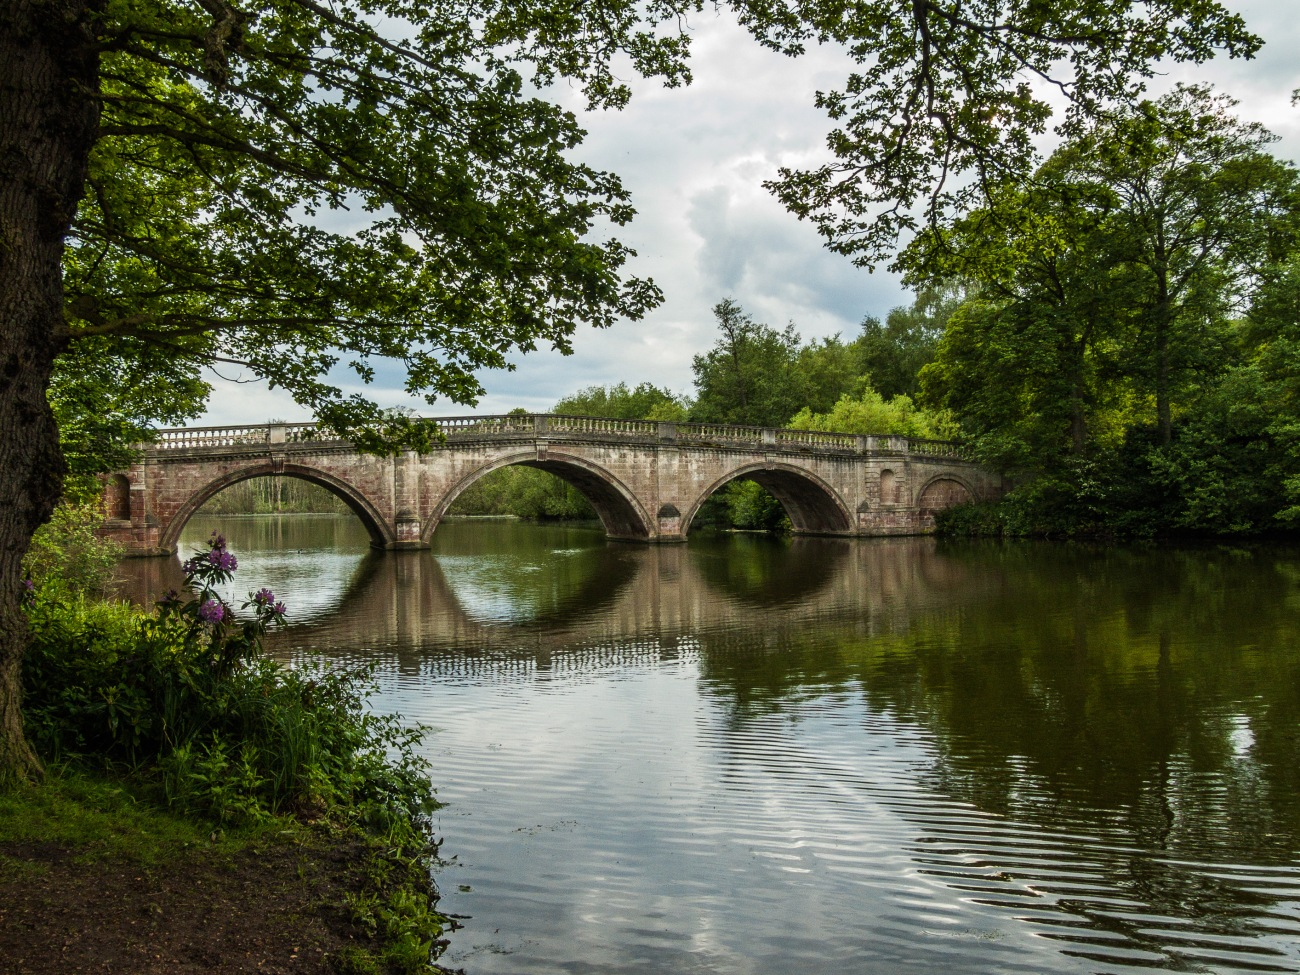 clumber-park-bridge